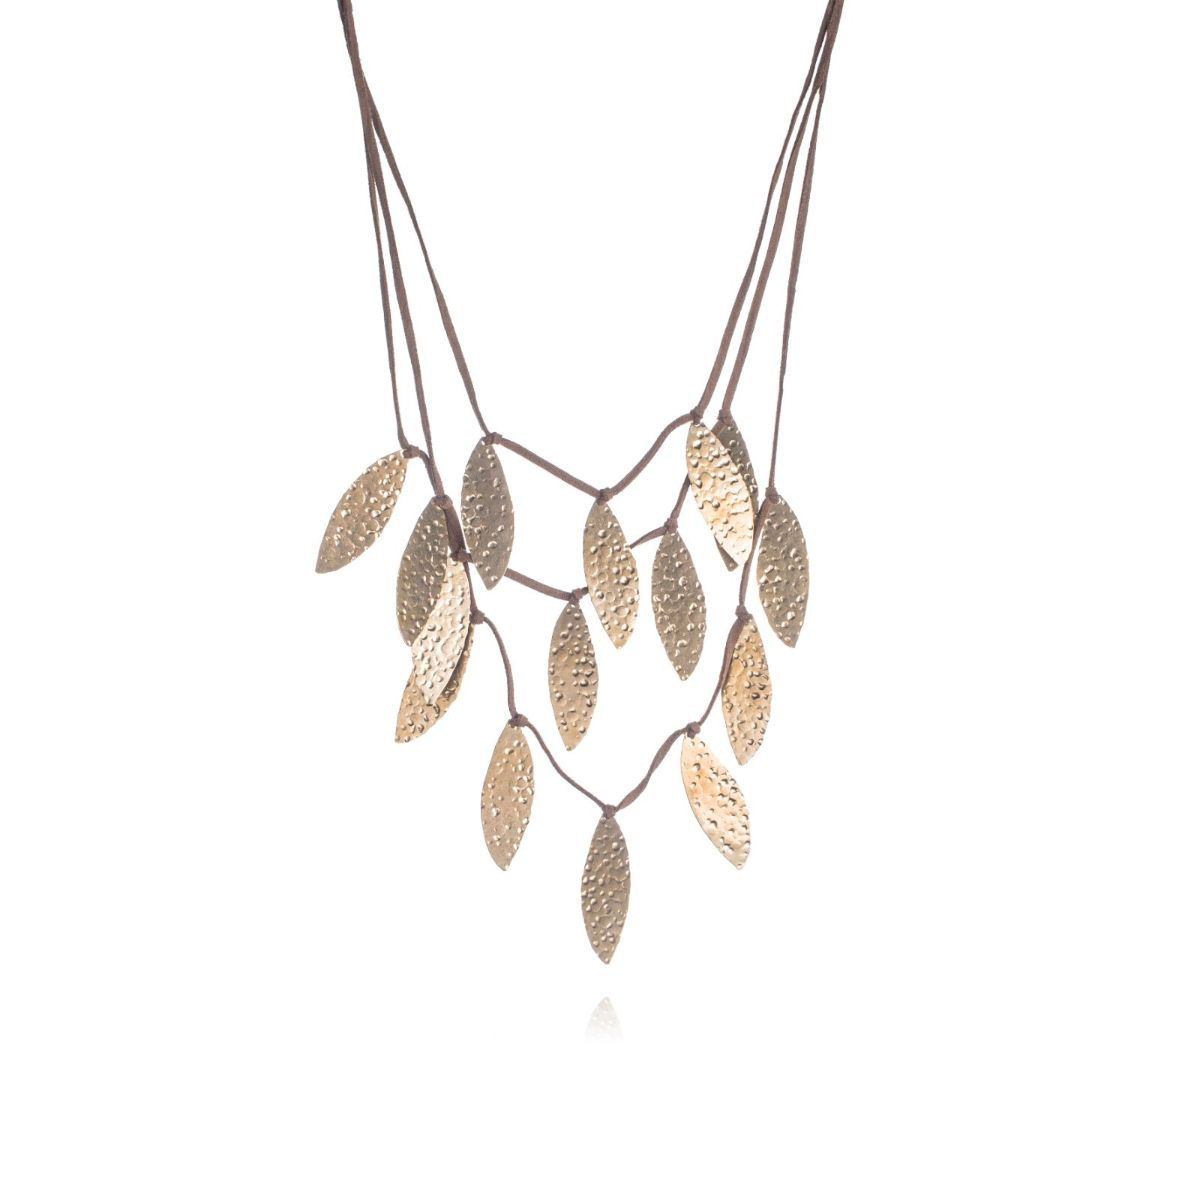 Sauce three-strand long suede necklace with gold-plated crushed leaf brass pieces.